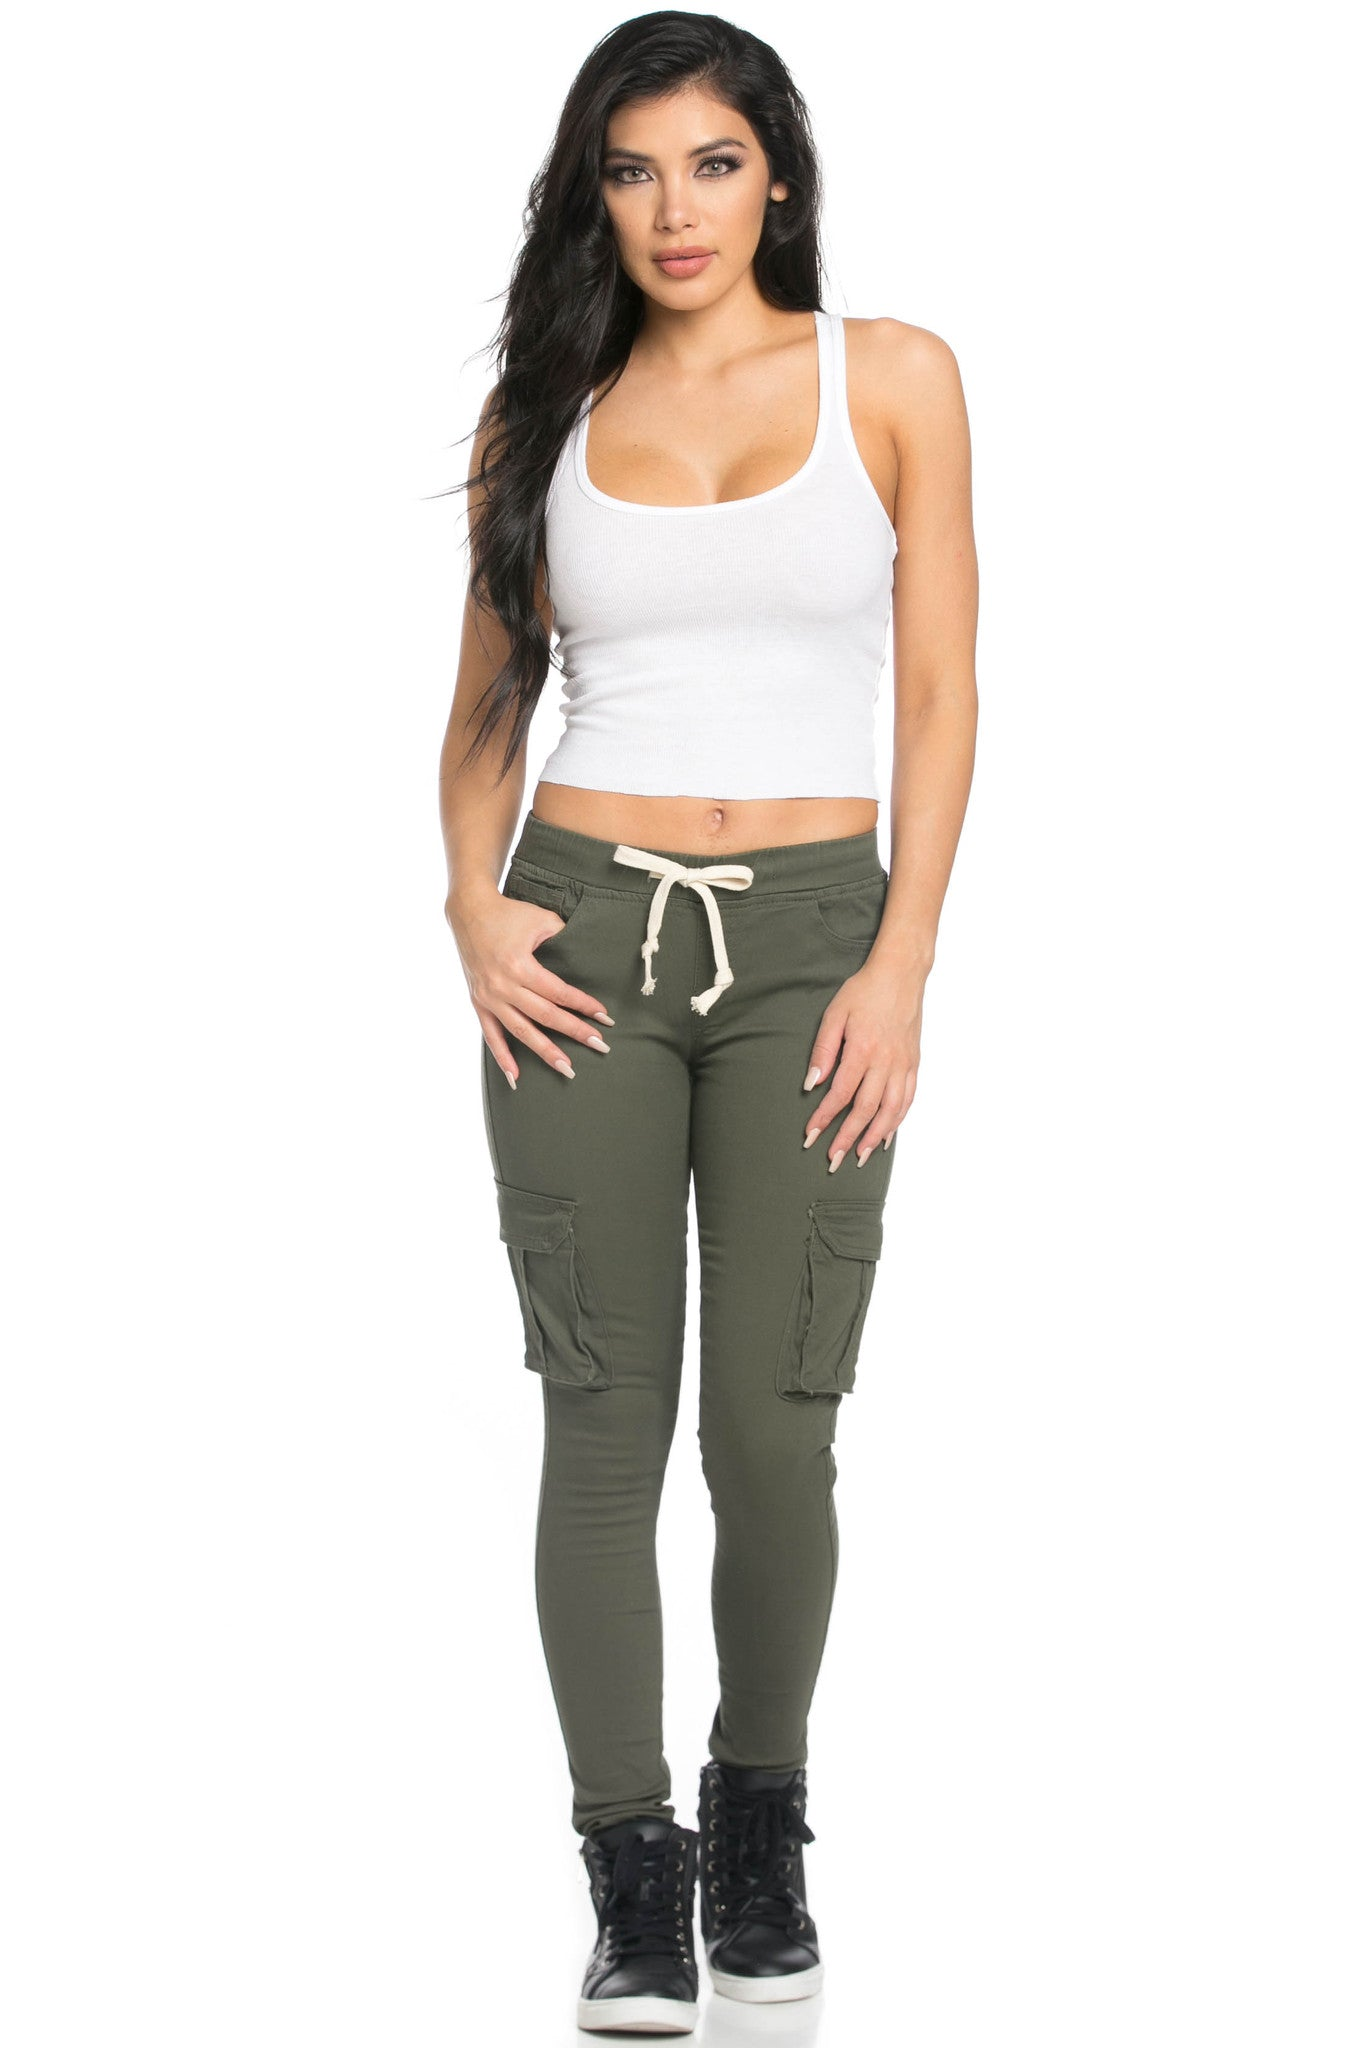 Mid Rise Skinny Olive Cargo Pants - Pants - My Yuccie - 9